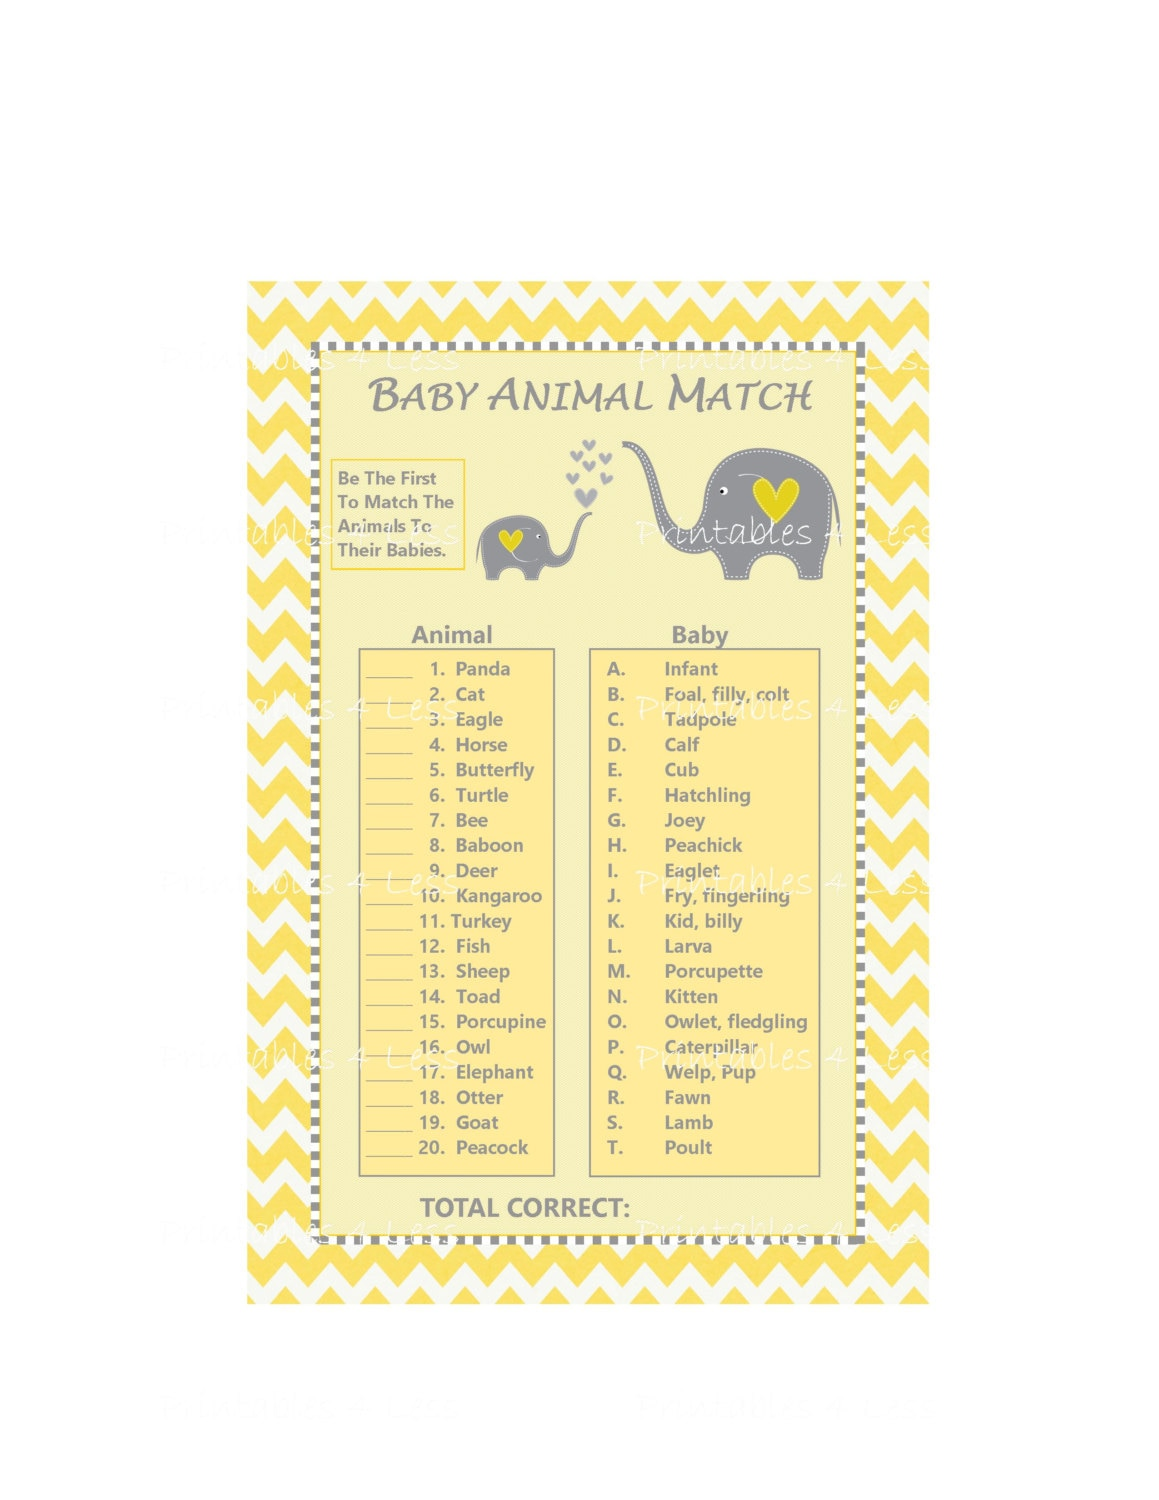 Decisive image intended for baby animal match game printable